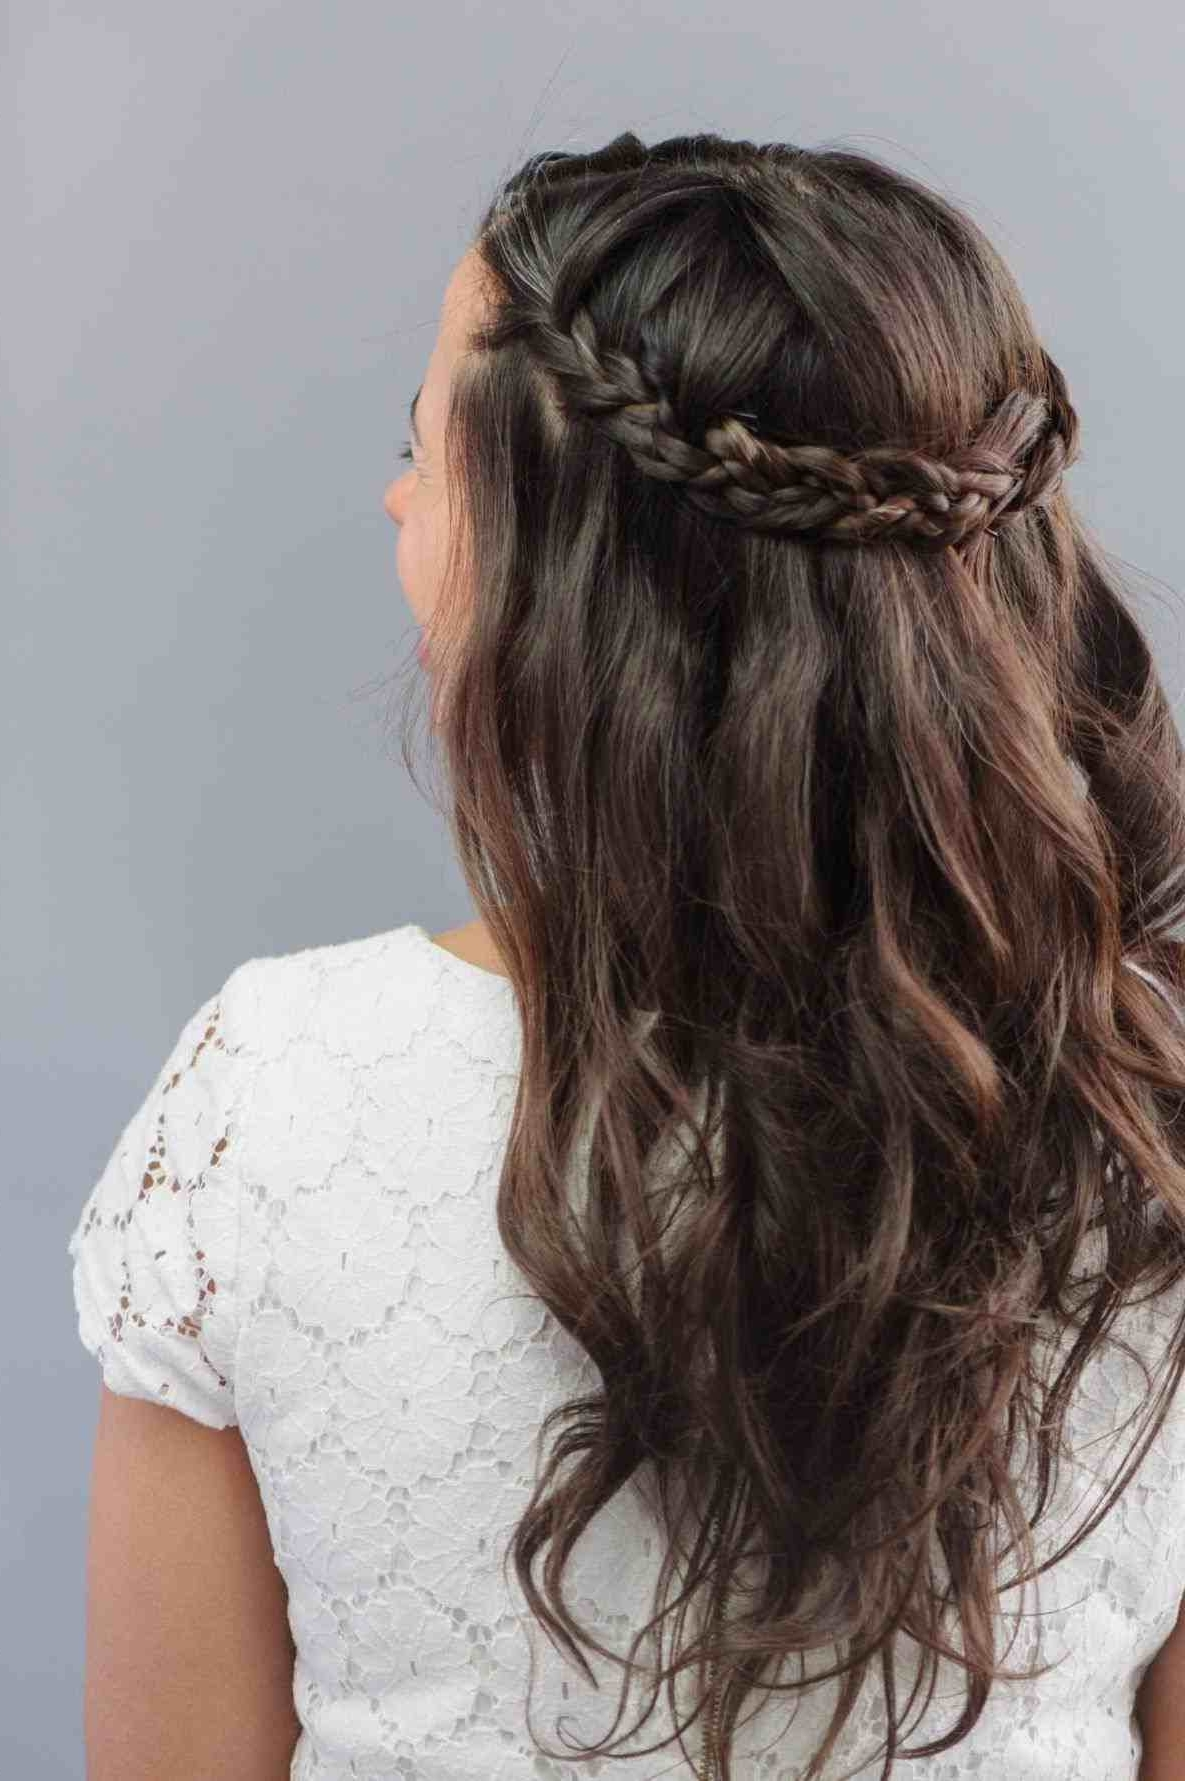 Recent Wedding Hairstyles For Long Hair With Braids Throughout Appealing Wedding Hairstyles For Long Hair With Braids On The Side (View 14 of 15)